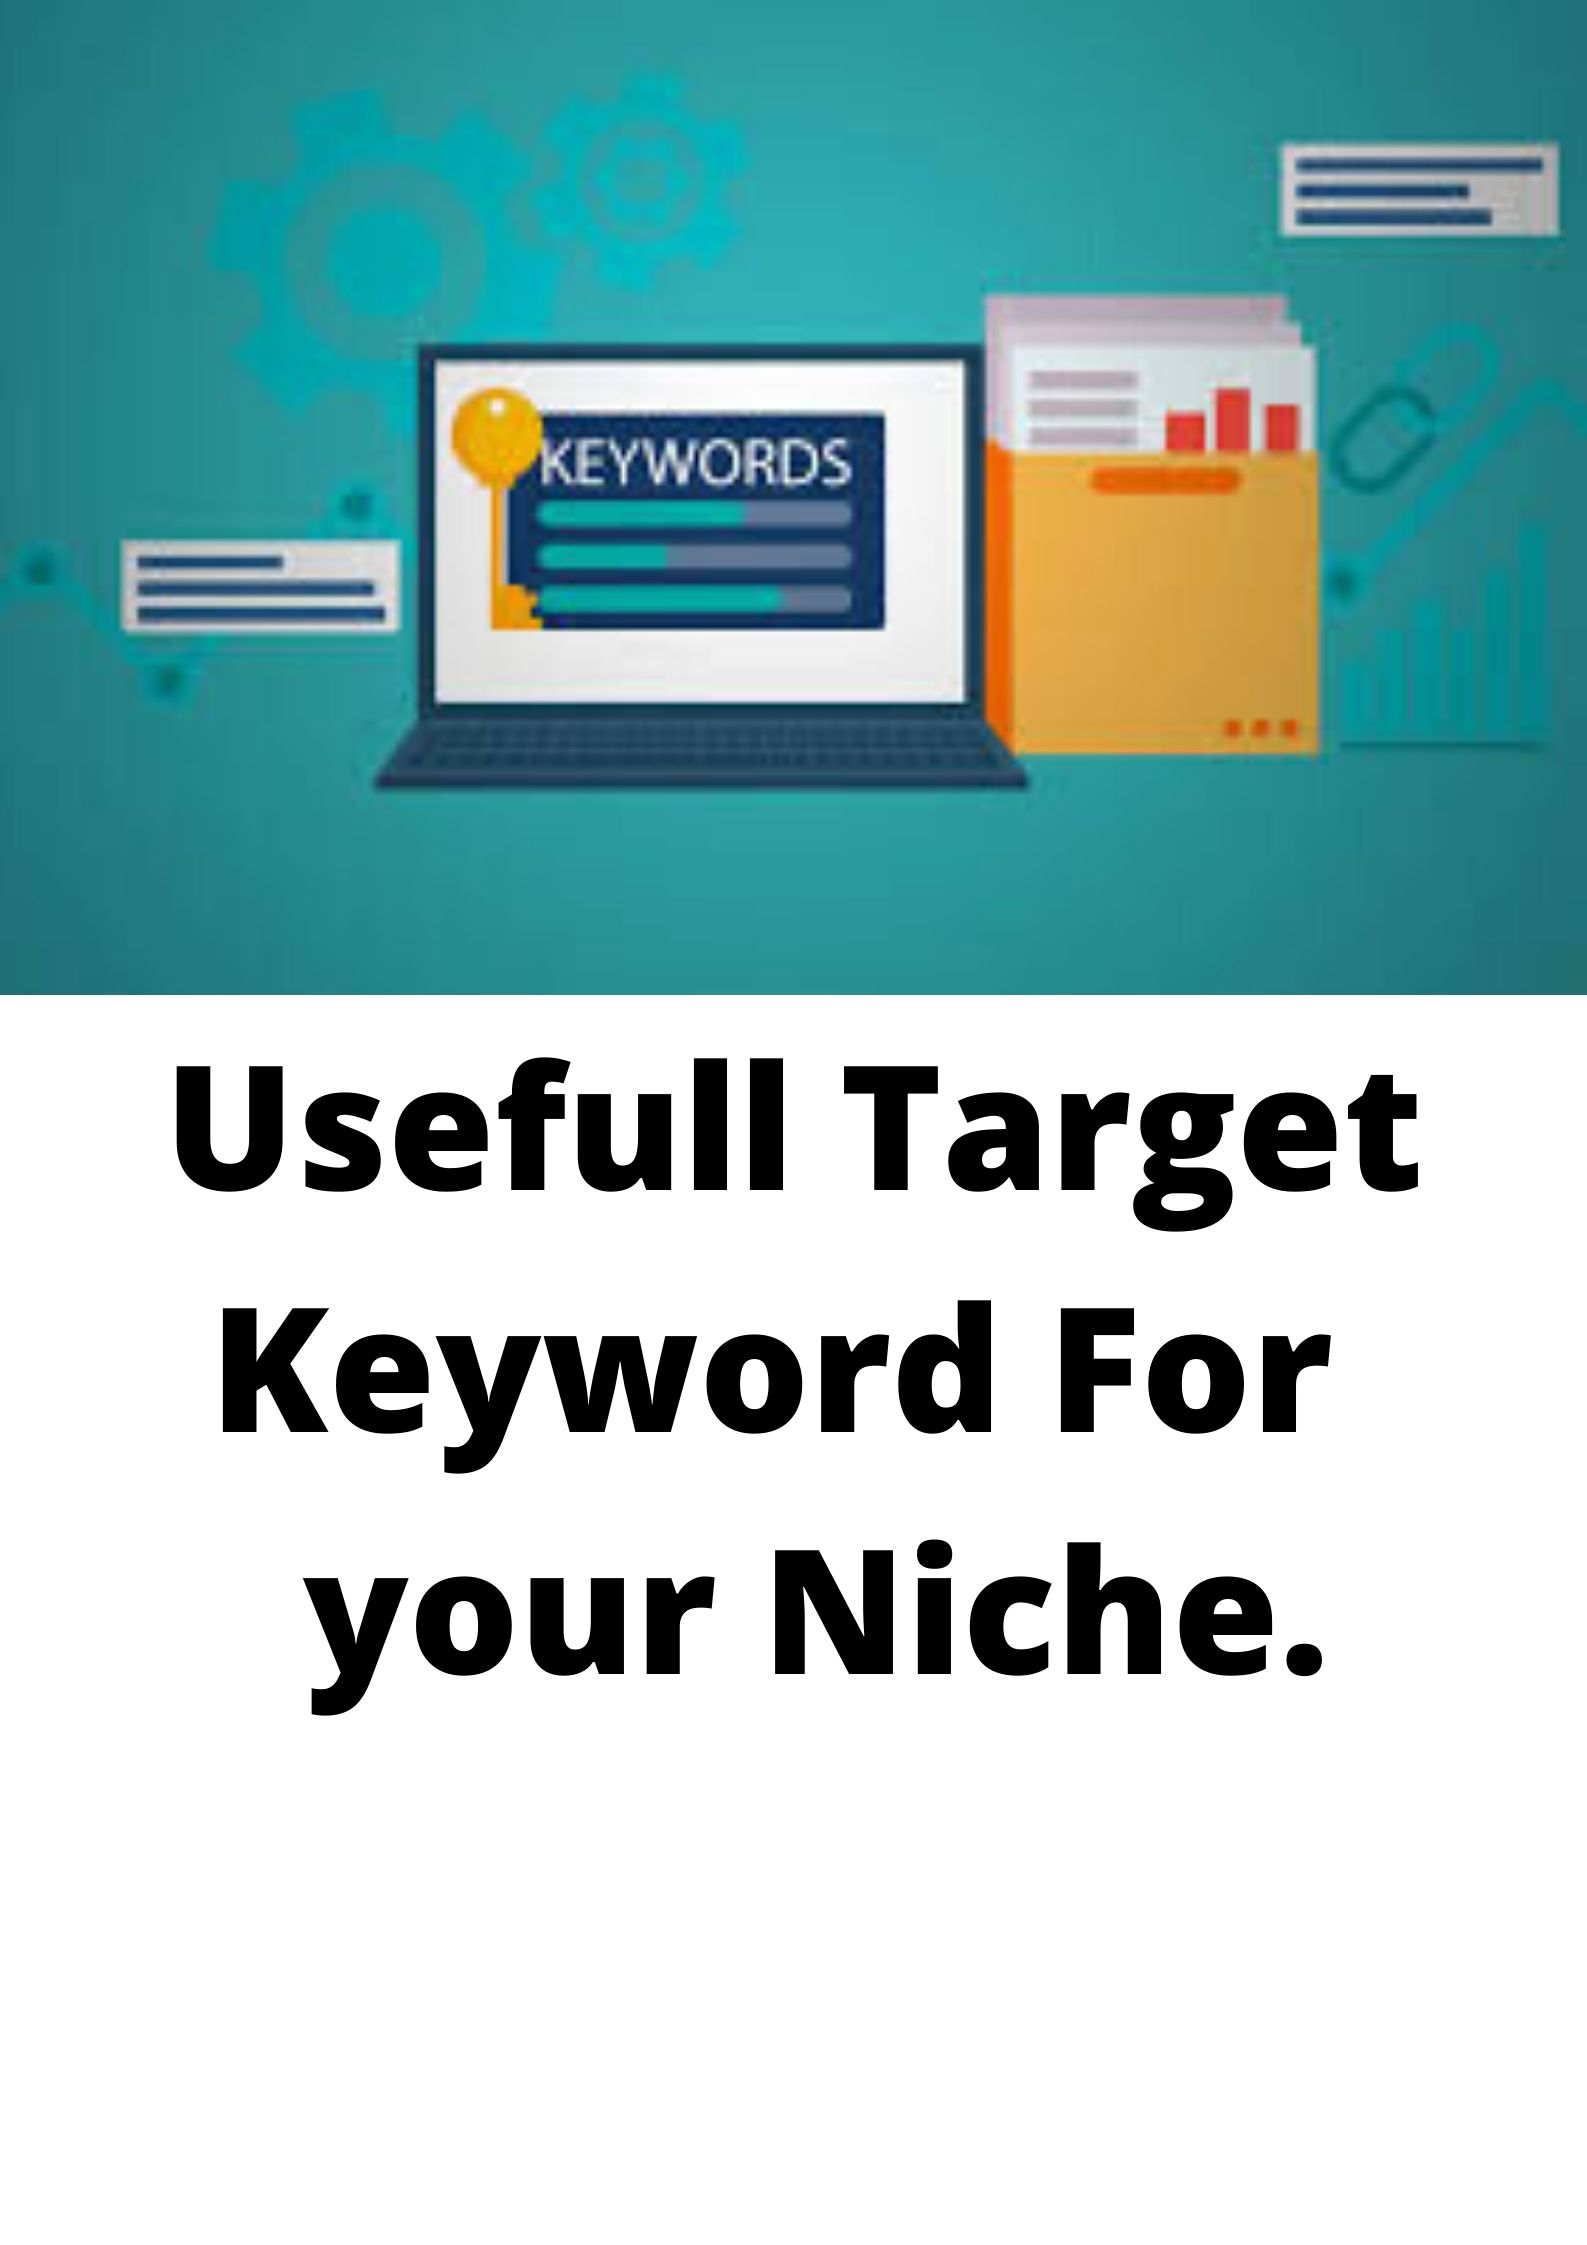 Take more Valuable & useful Target Keyword Research For Niche.